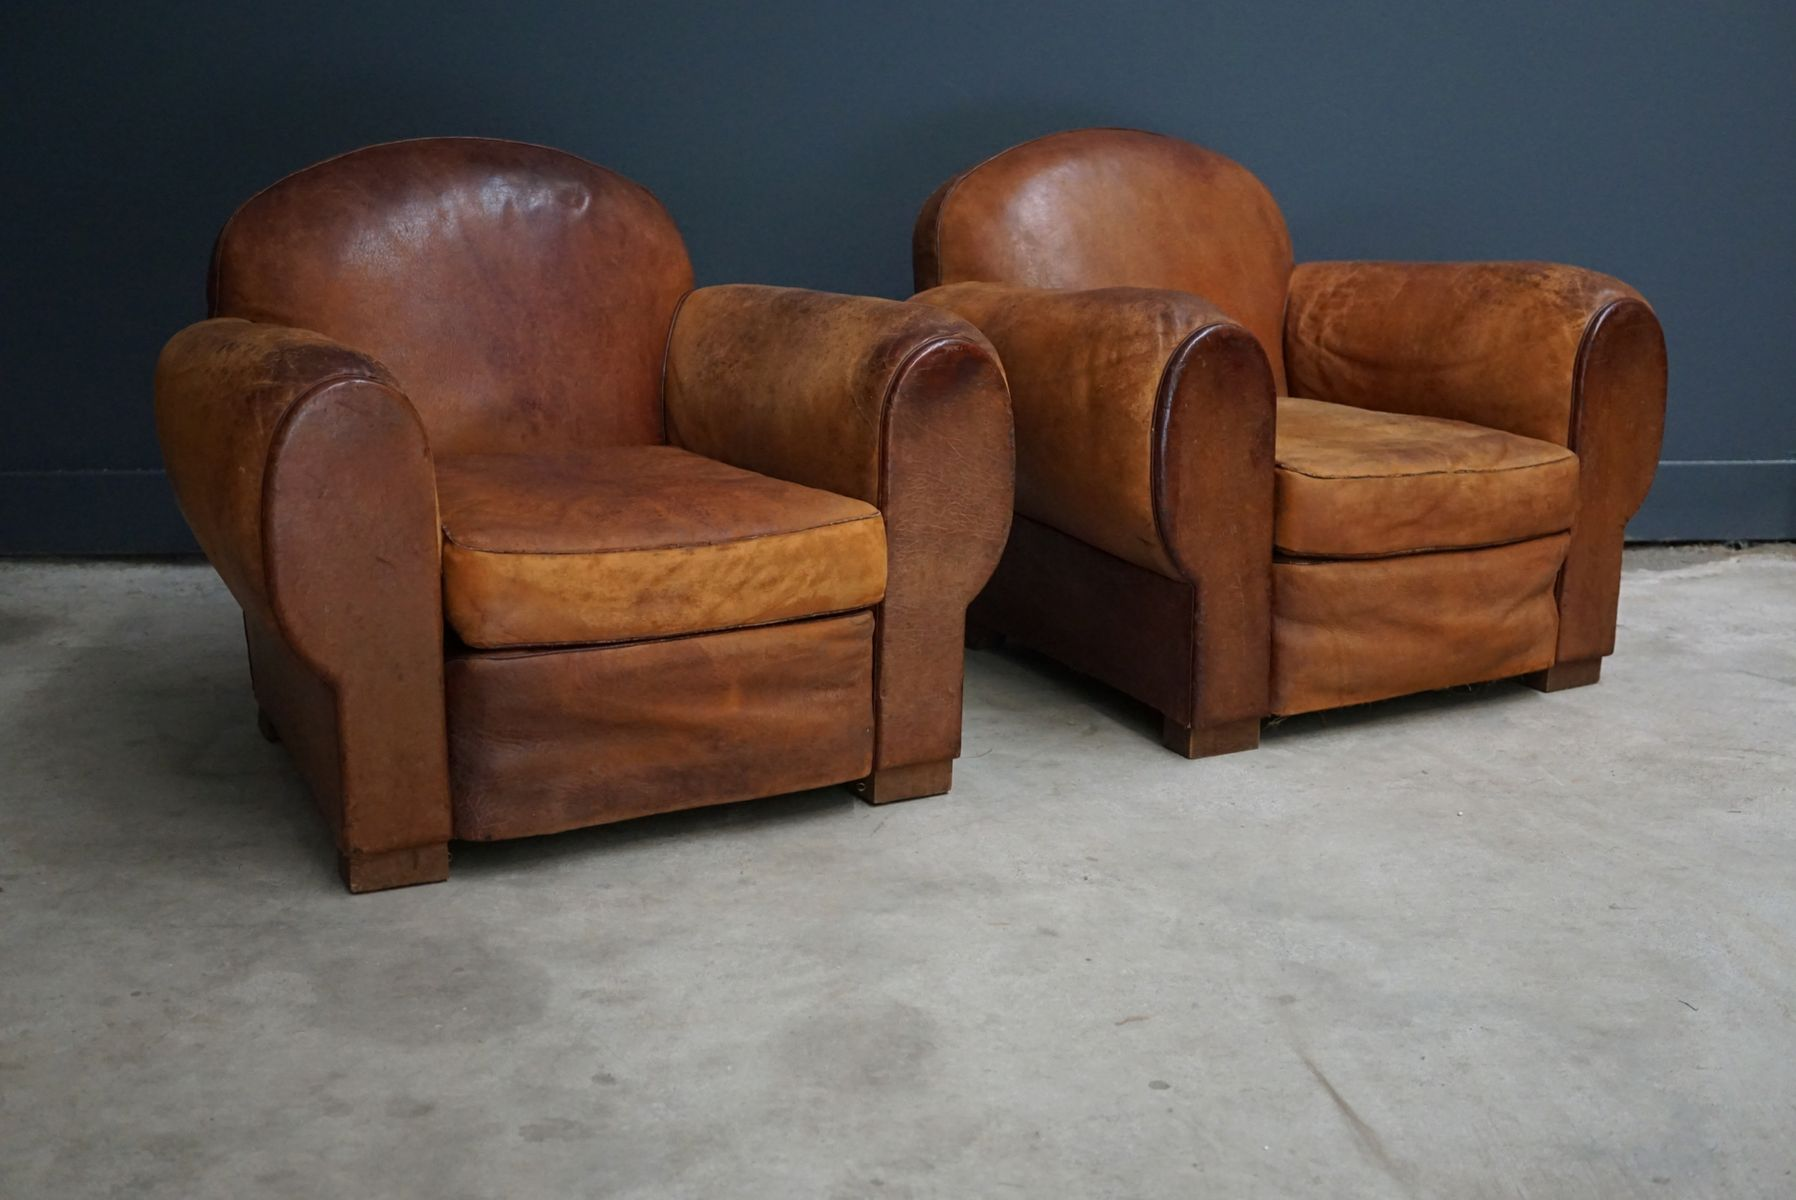 Vintage French Cognac Leather Club Chairs Set of 2 for sale at Pamono